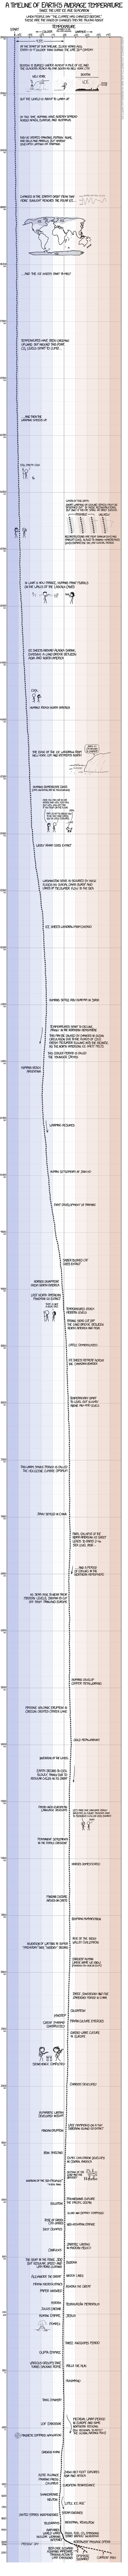 Here's 22,000 Years Of Climate Changes In A Single Comic